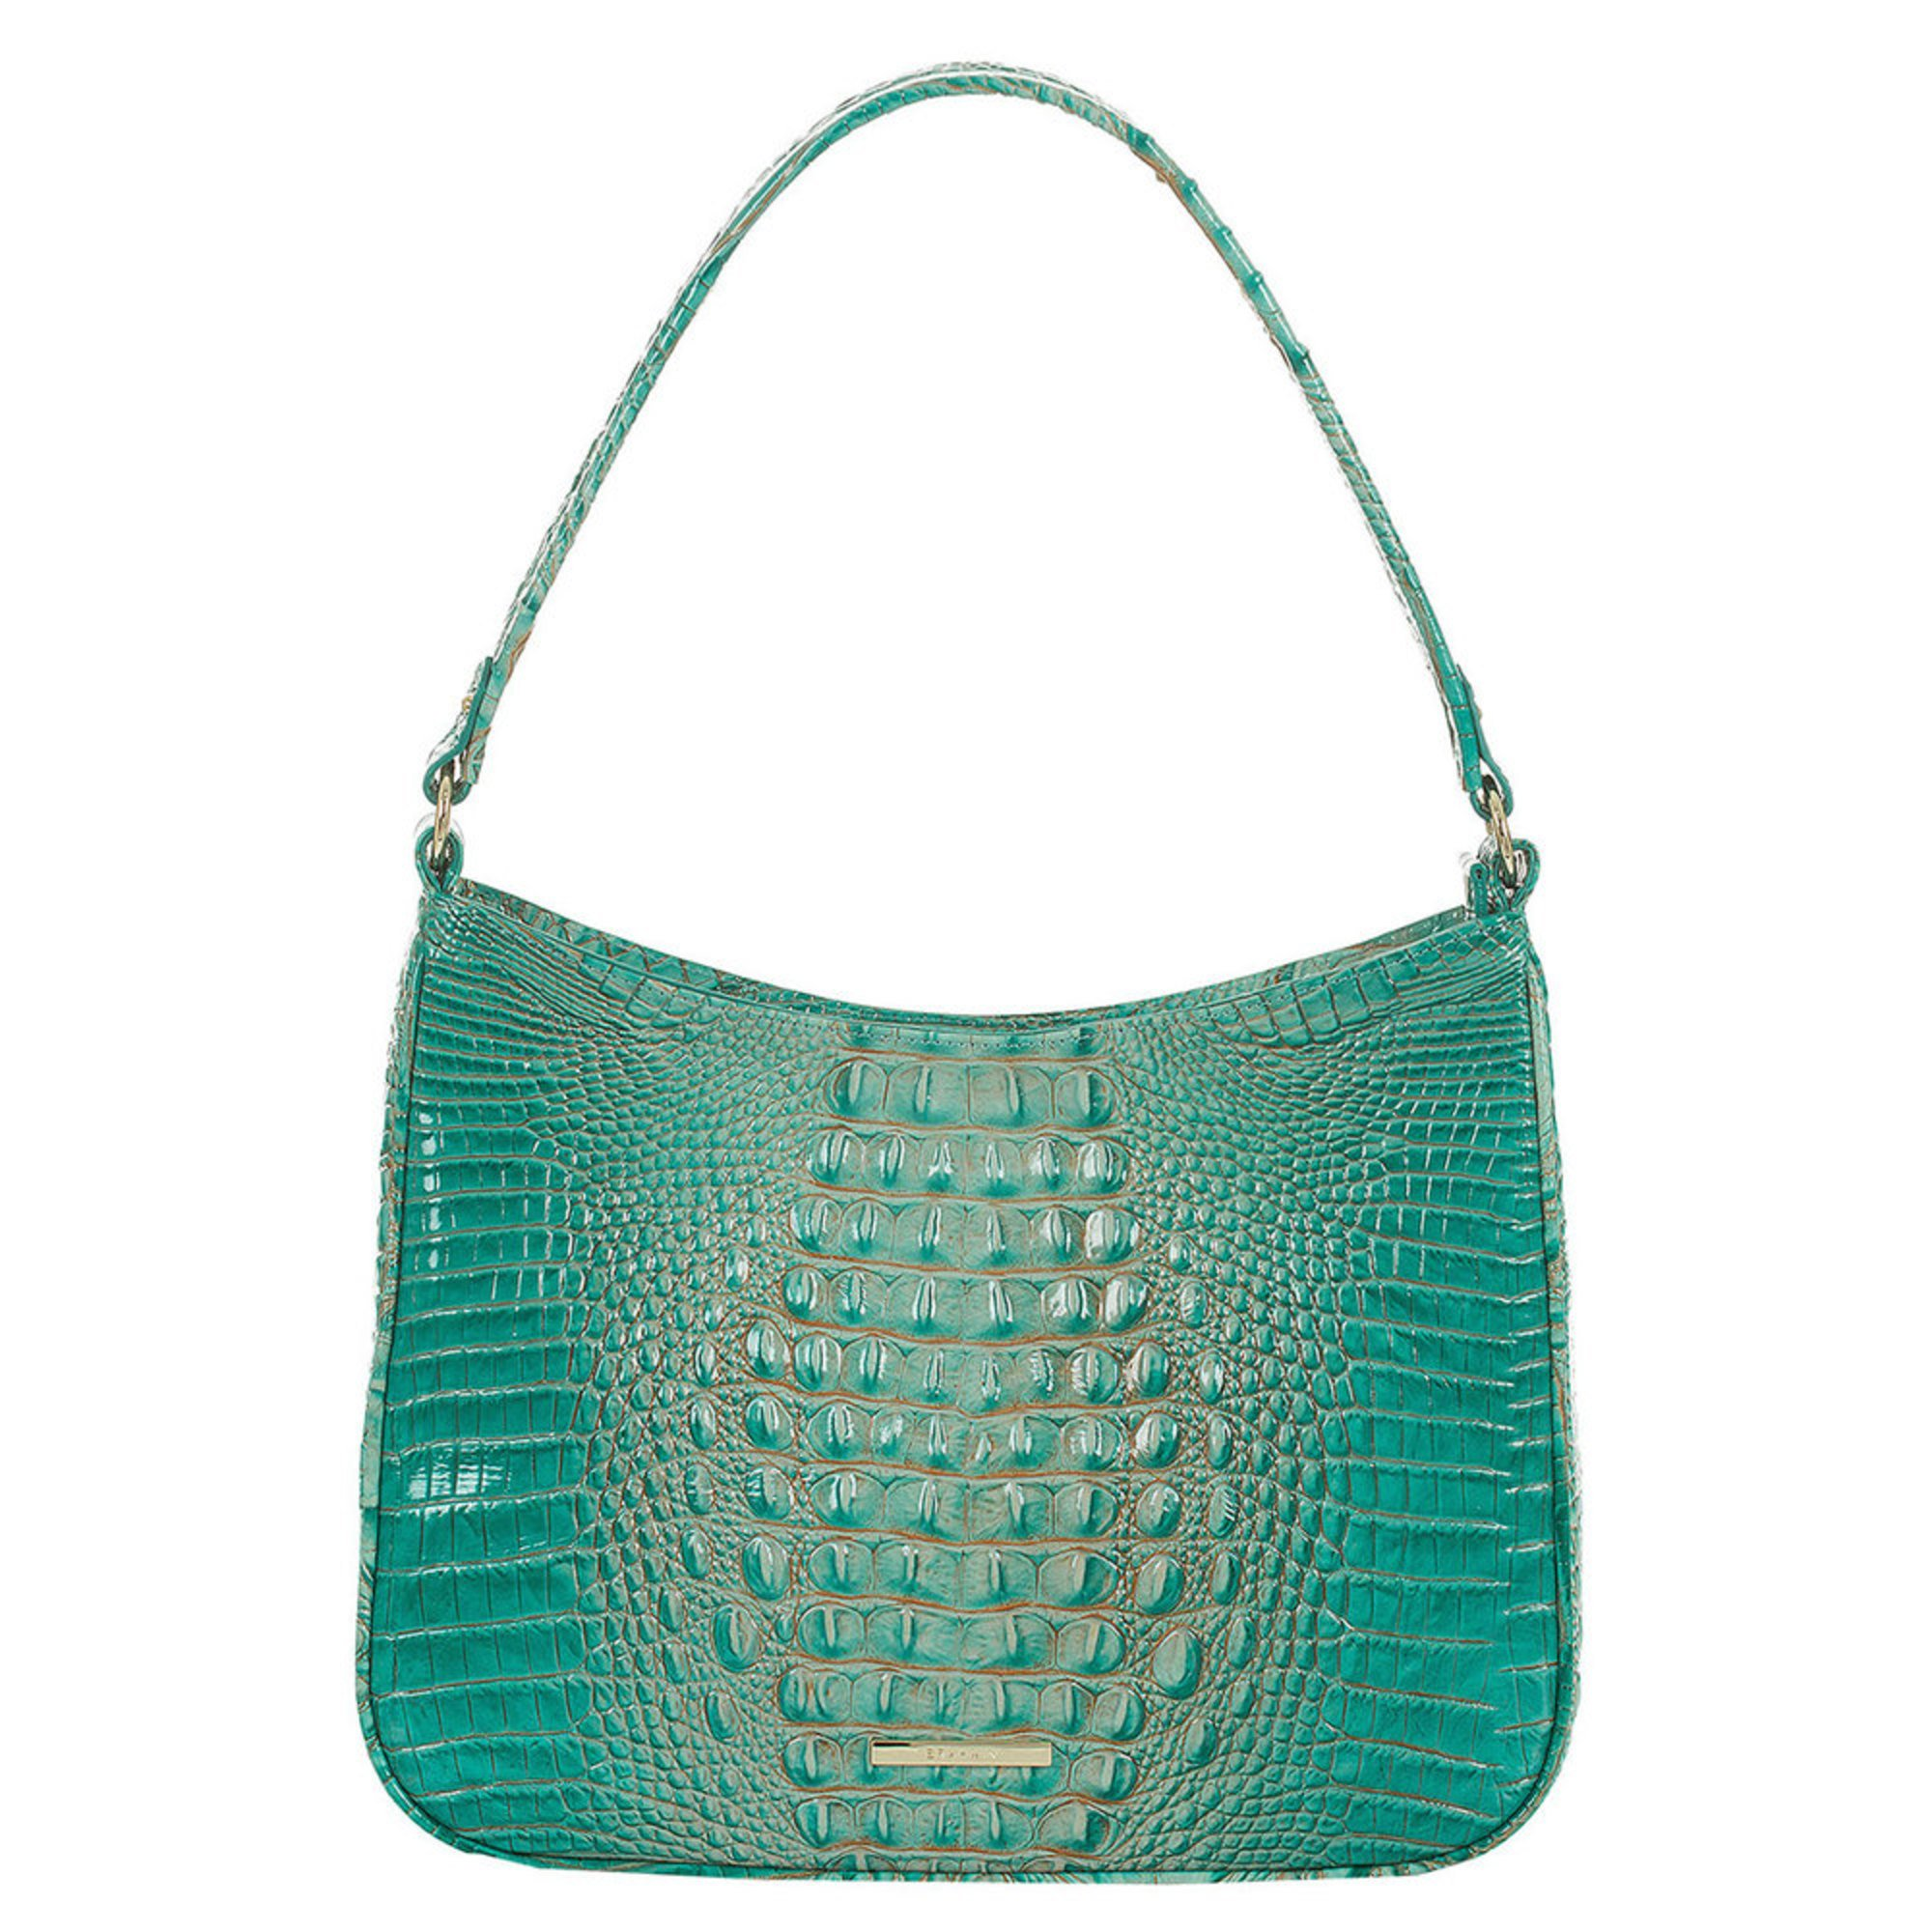 Brahmin Noelle Shoulder Bag Turquoise Melbourne